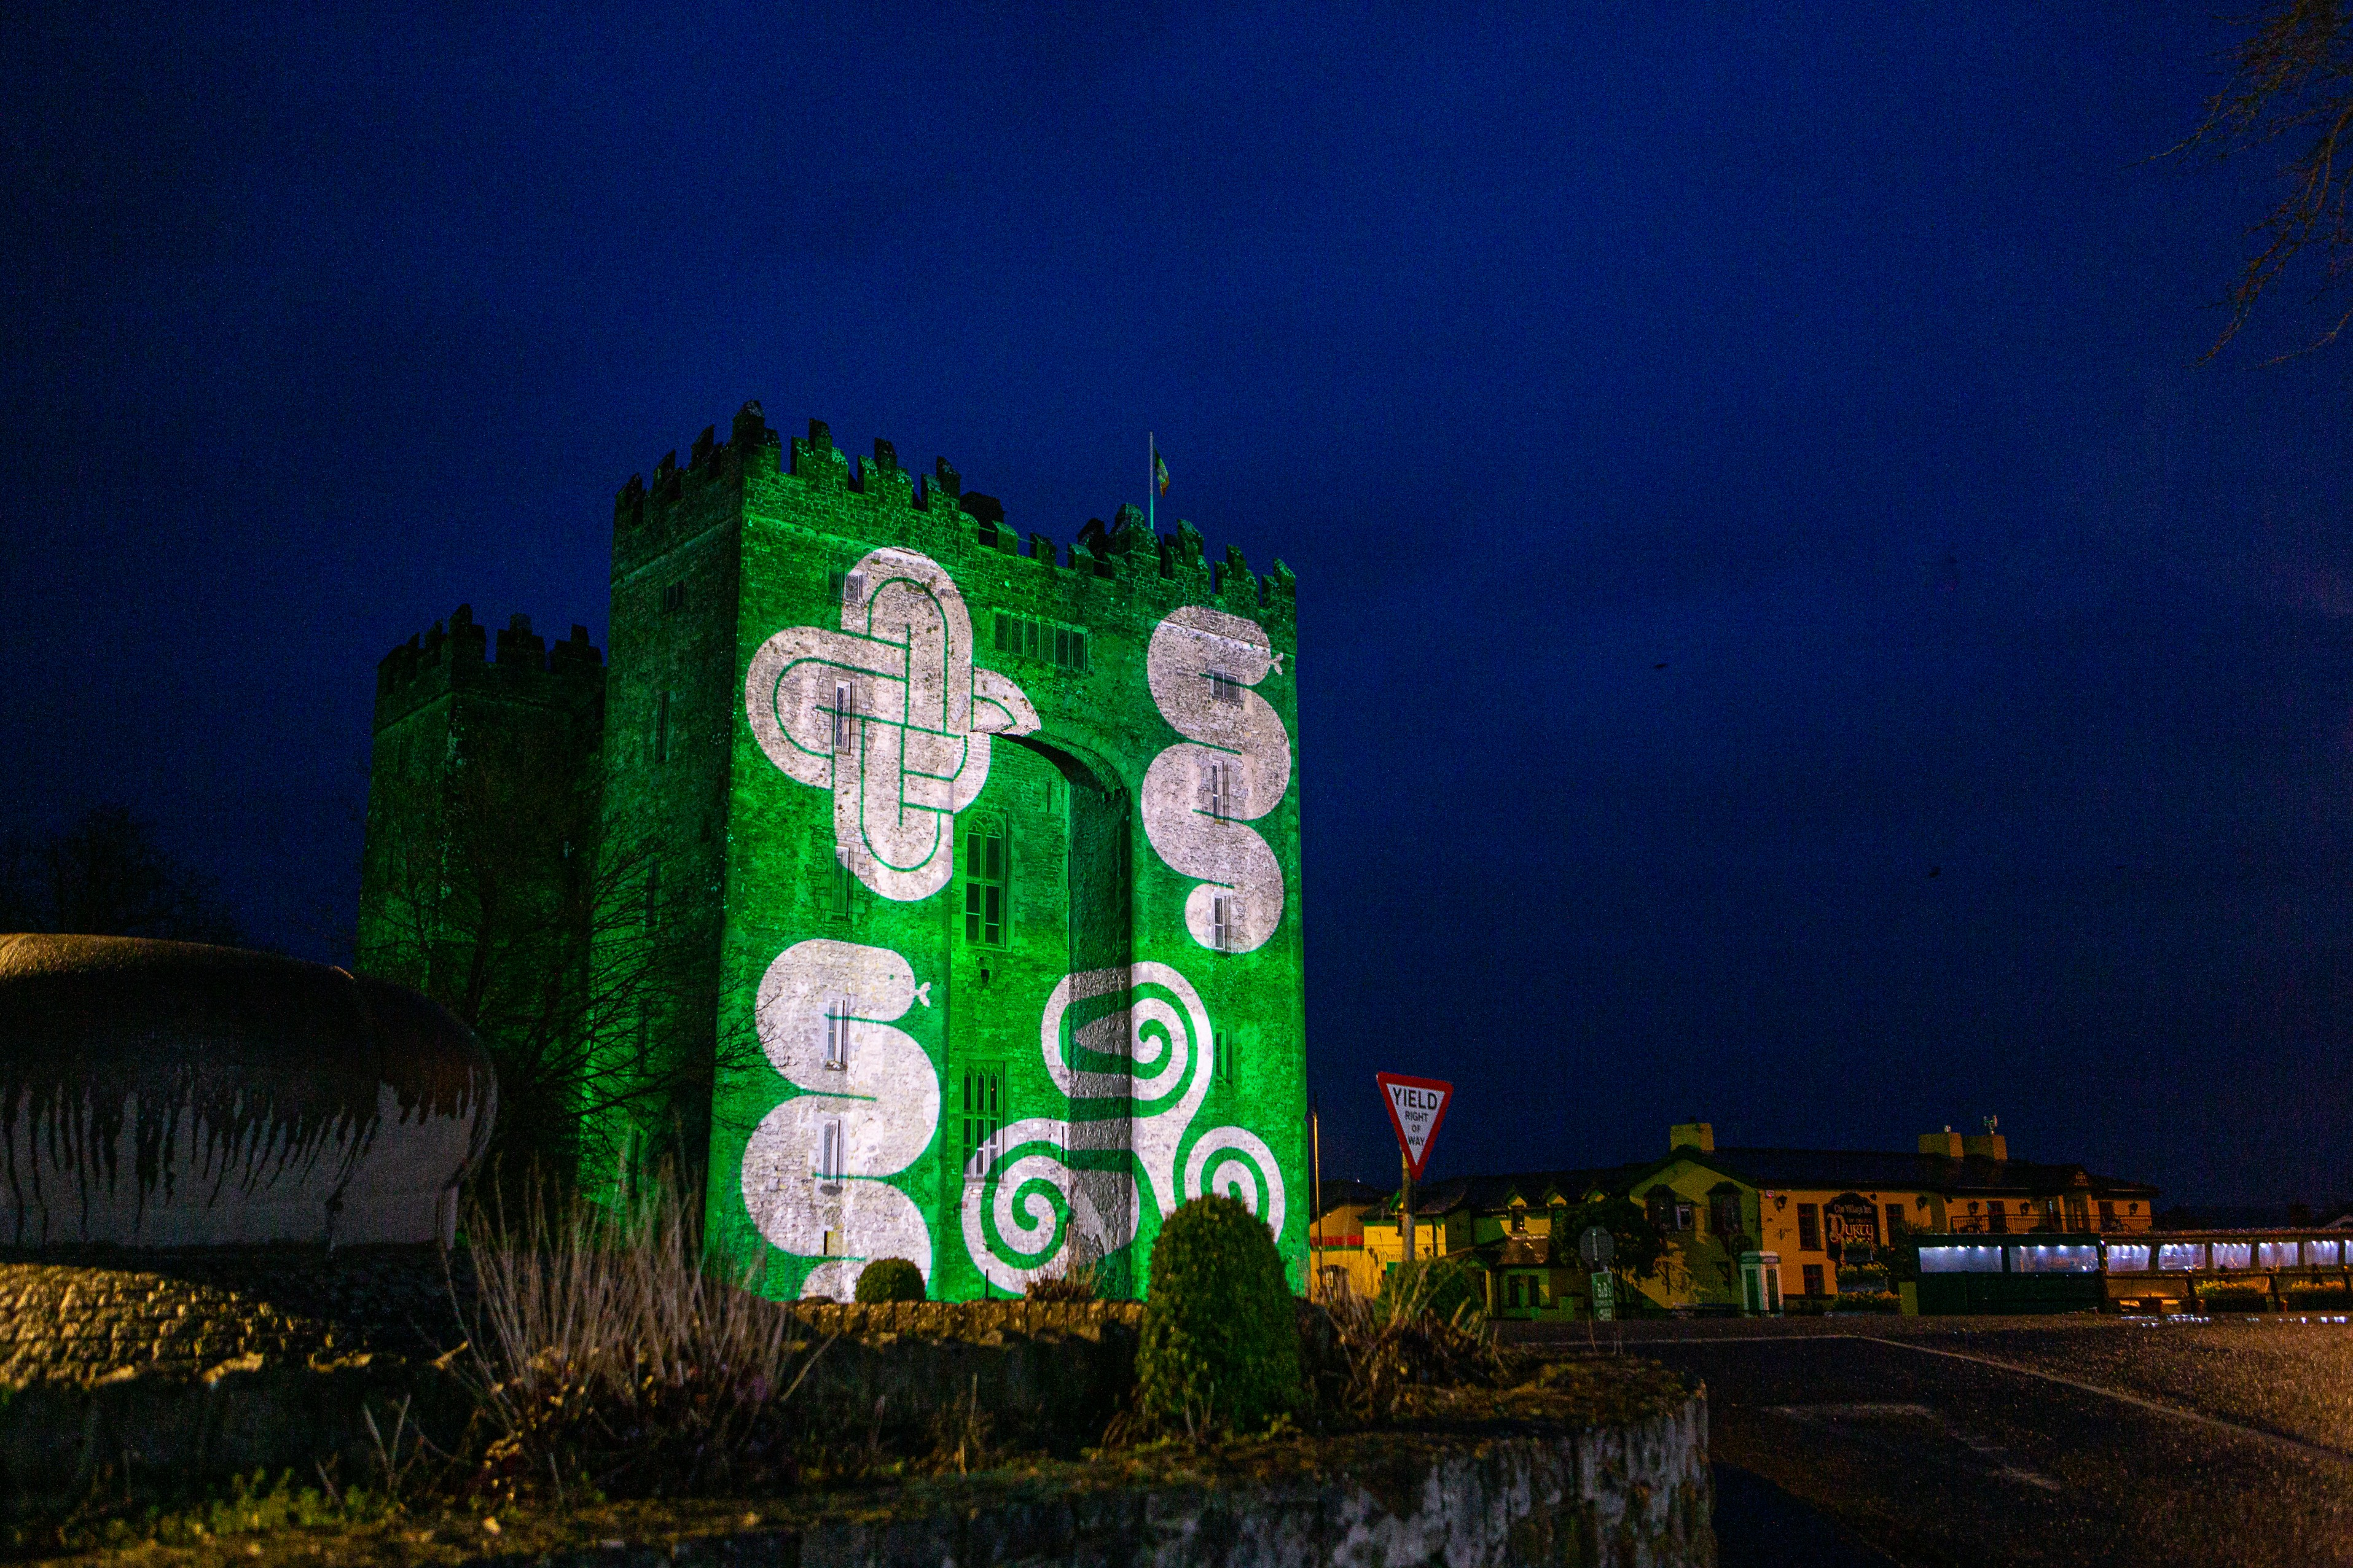 Shannon Group buildings light up Green for St Patrick's Day Image